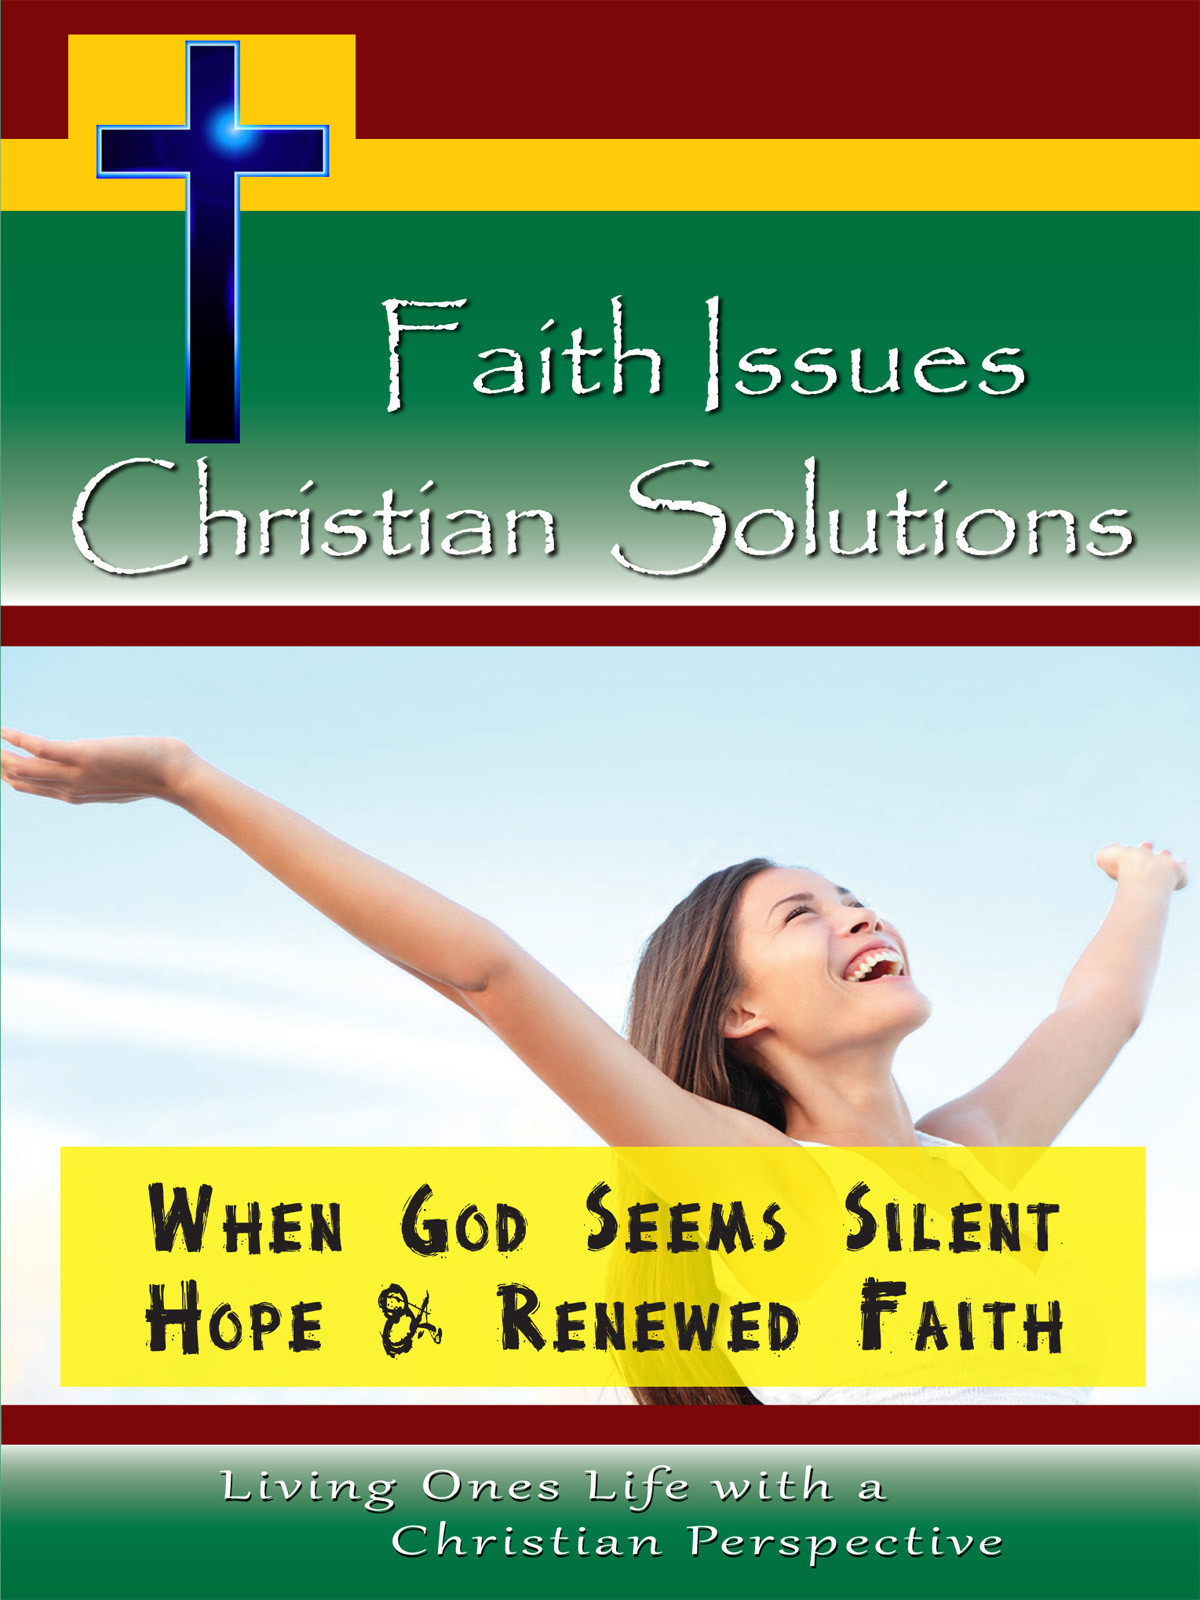 CH10023 - When God Seems Silent Hope & Renewed Faith